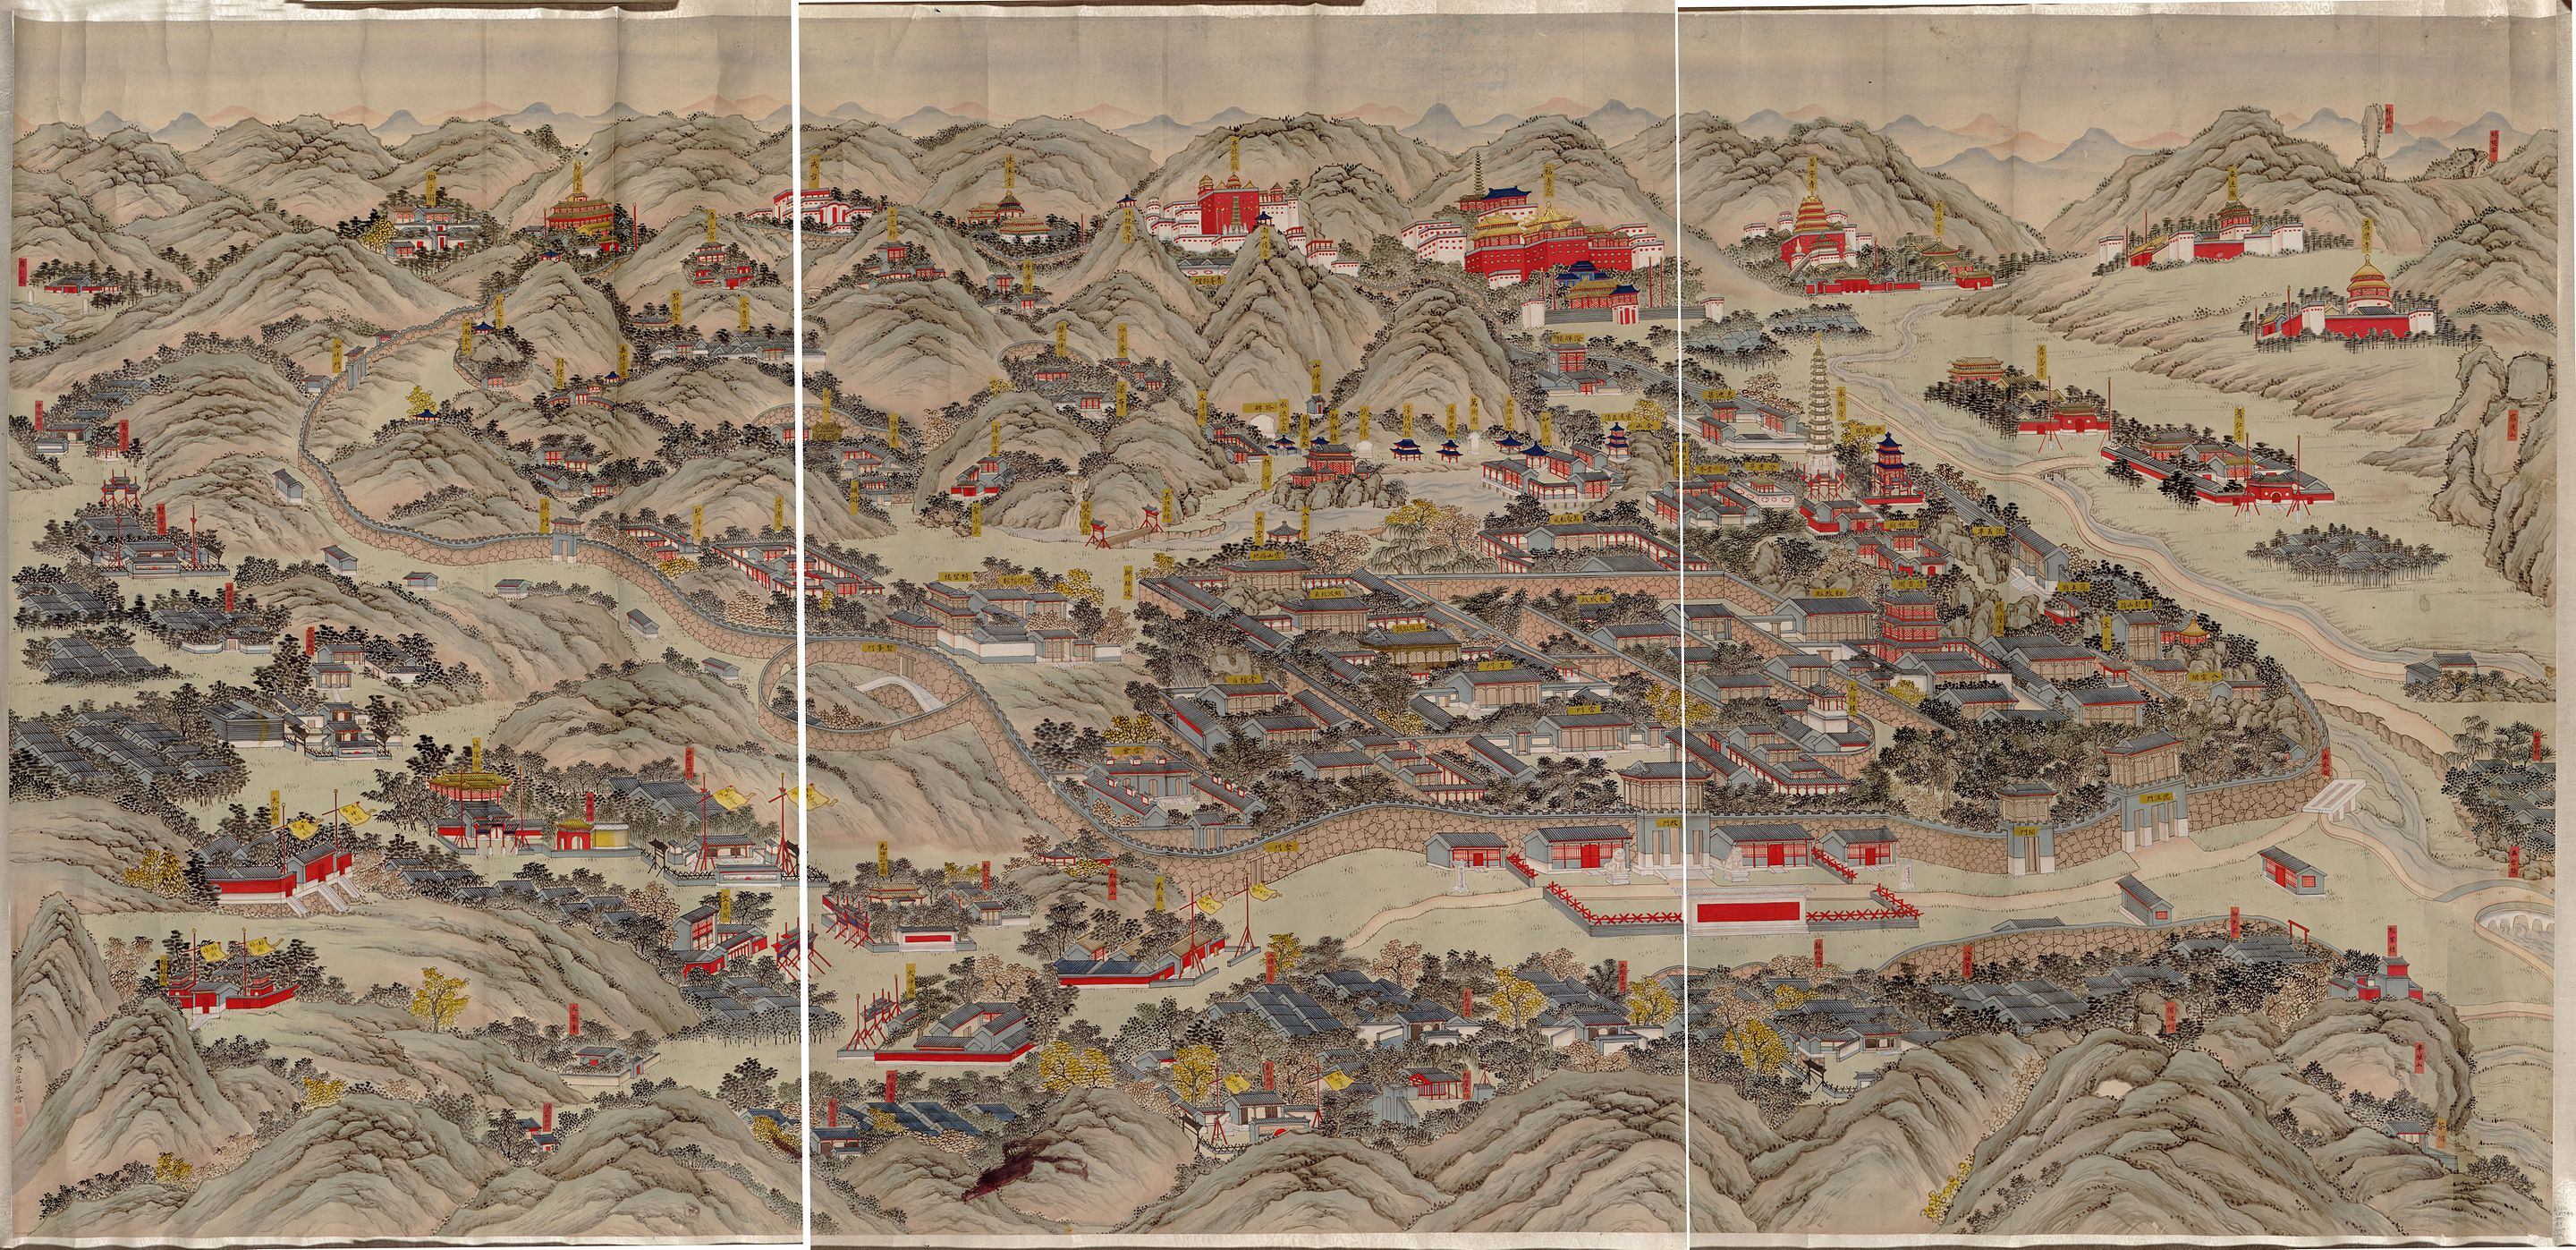 Qing dynasty map of the resort